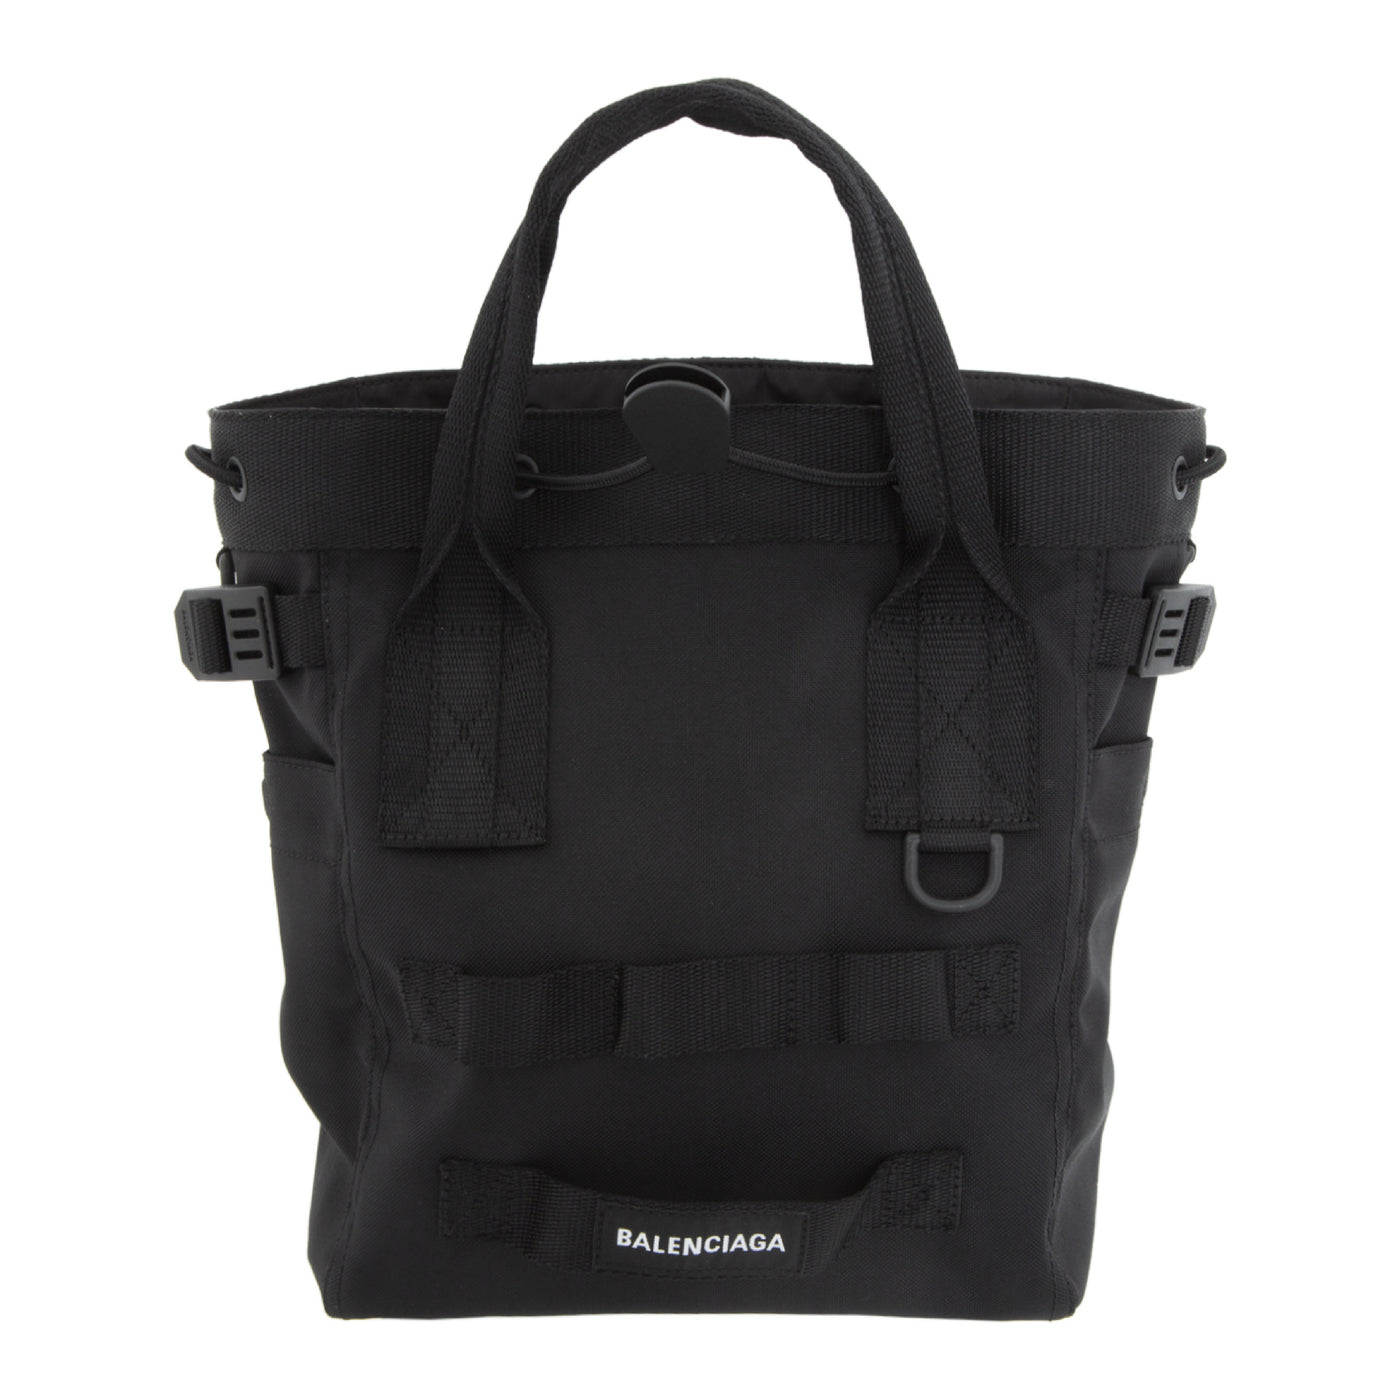 Load image into Gallery viewer, BALENCIAGA ARMY TOTE BAG BLACK